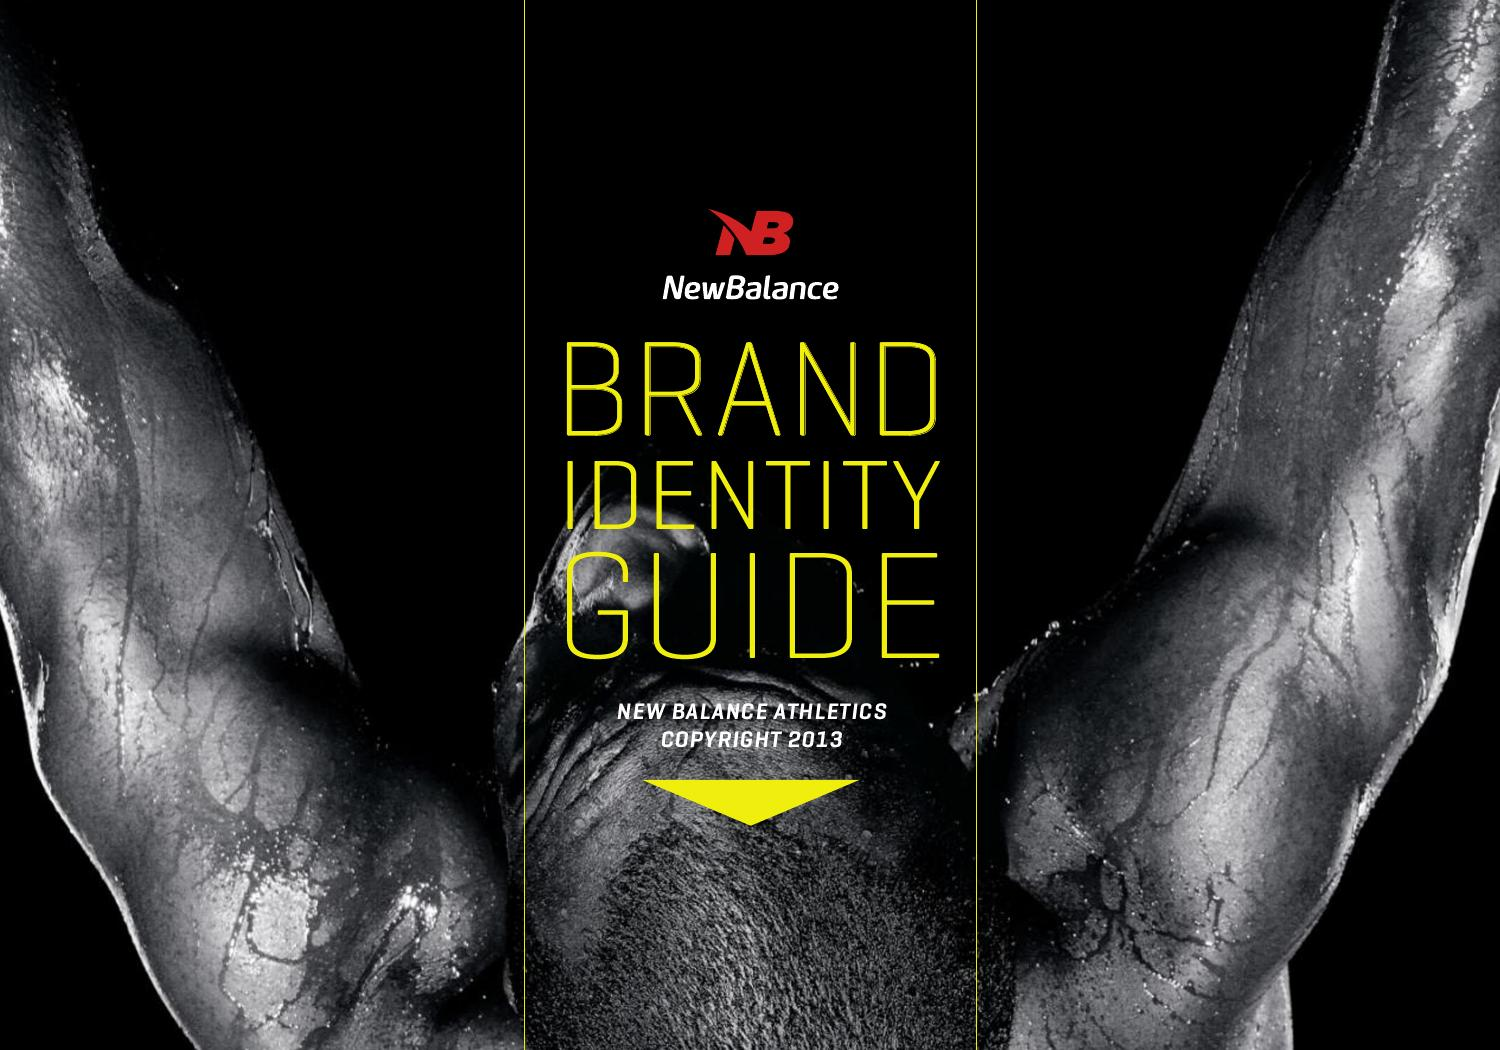 New balance brand identity guide by adrian posadas issuu biocorpaavc Choice Image